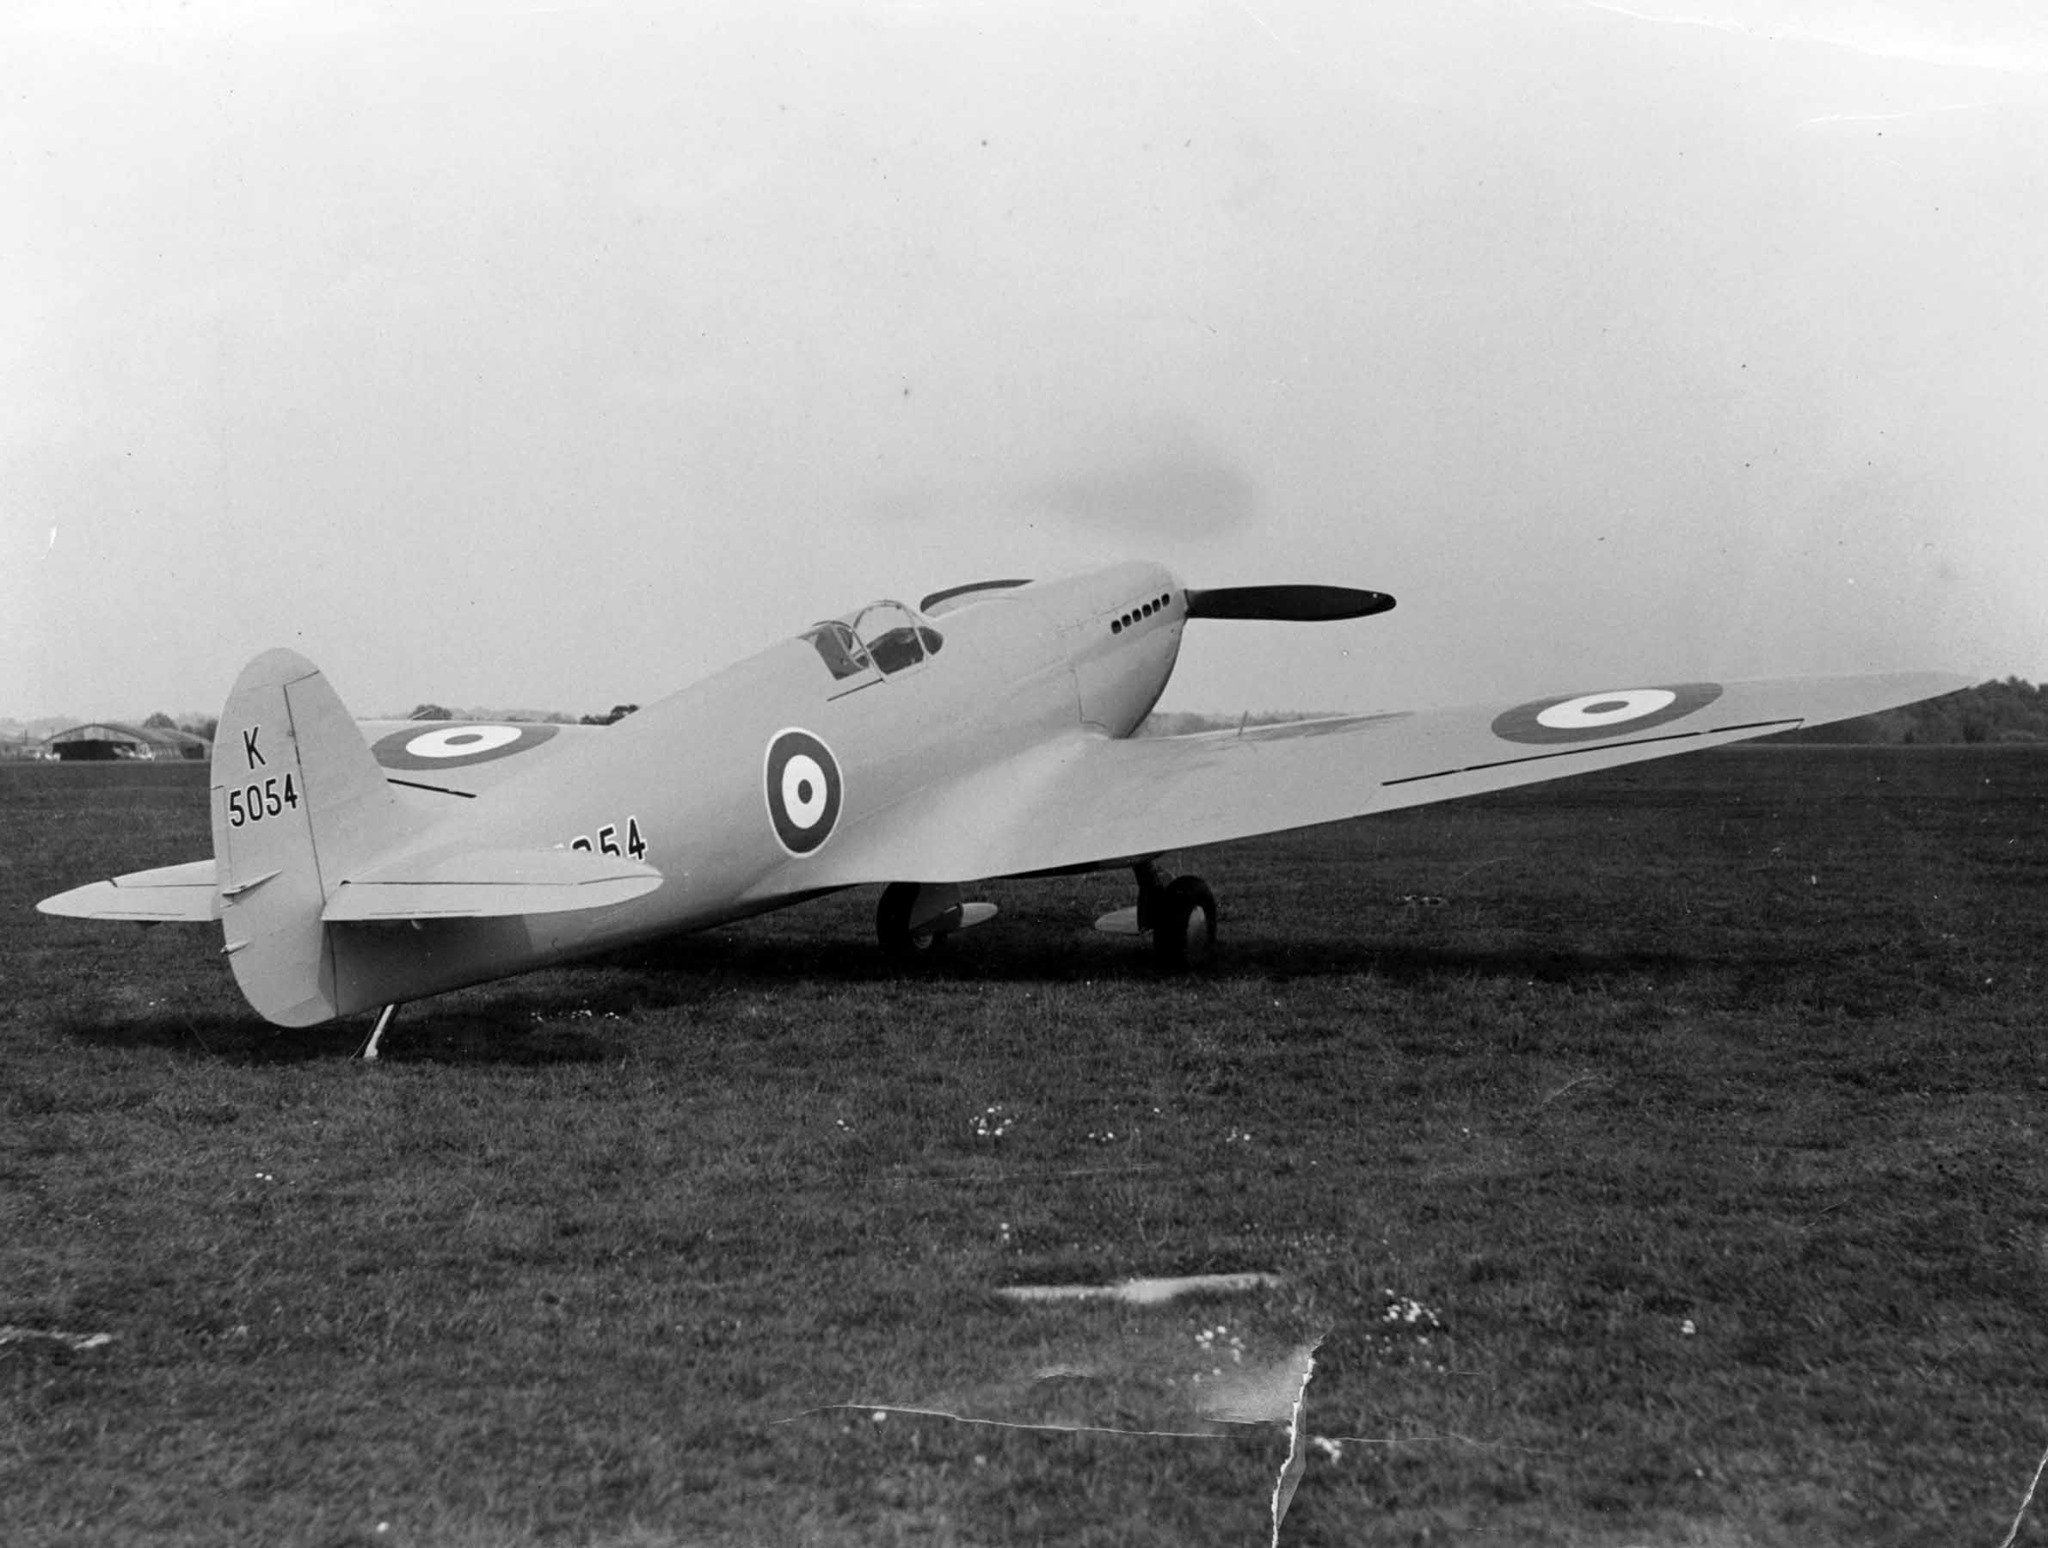 The streamlined features of the first Spitfire are obvious.